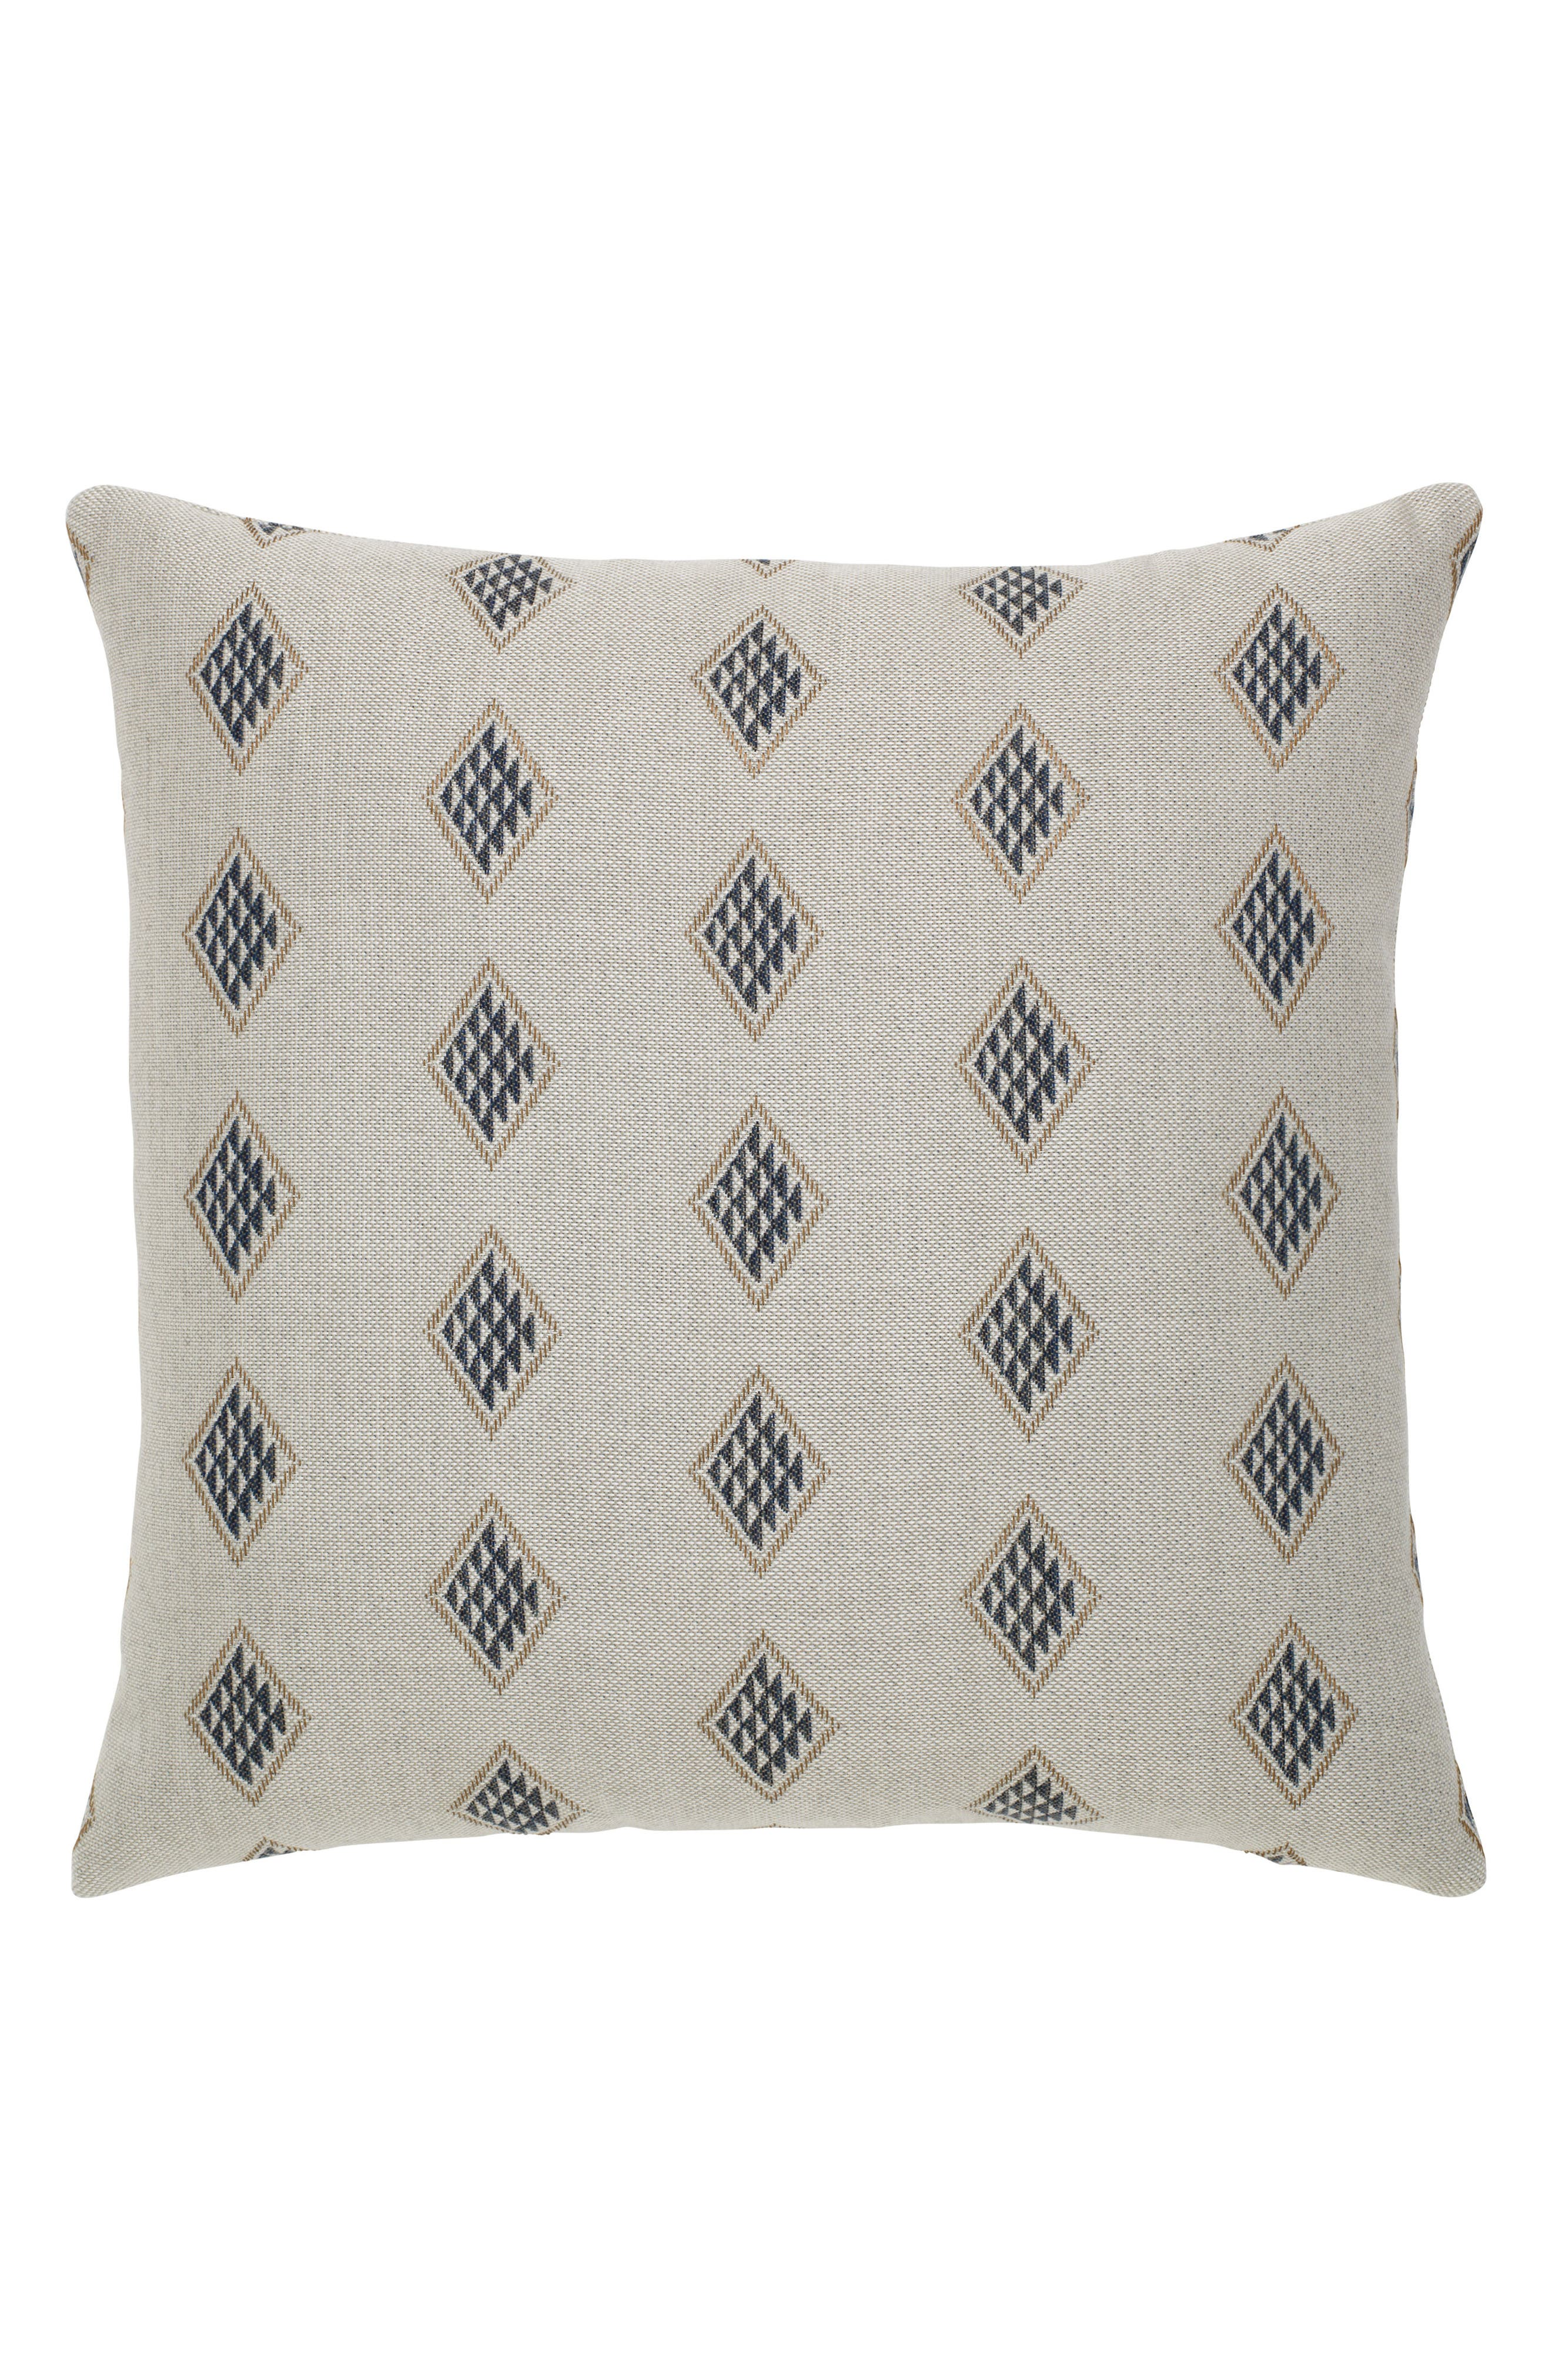 Passage Indoor/Outdoor Accent Pillow,                             Alternate thumbnail 2, color,                             100